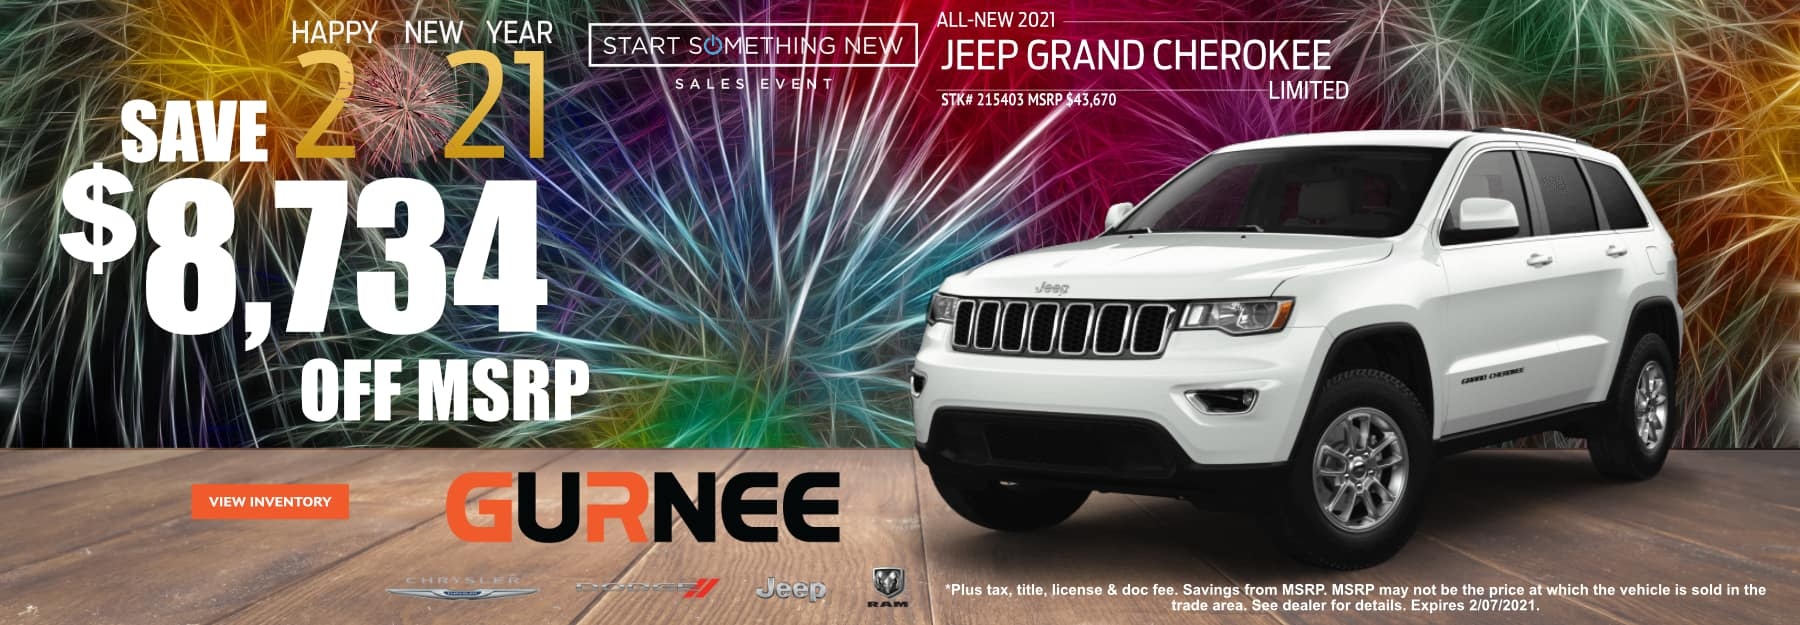 January-2021 Grand Cherokee_Gurnee